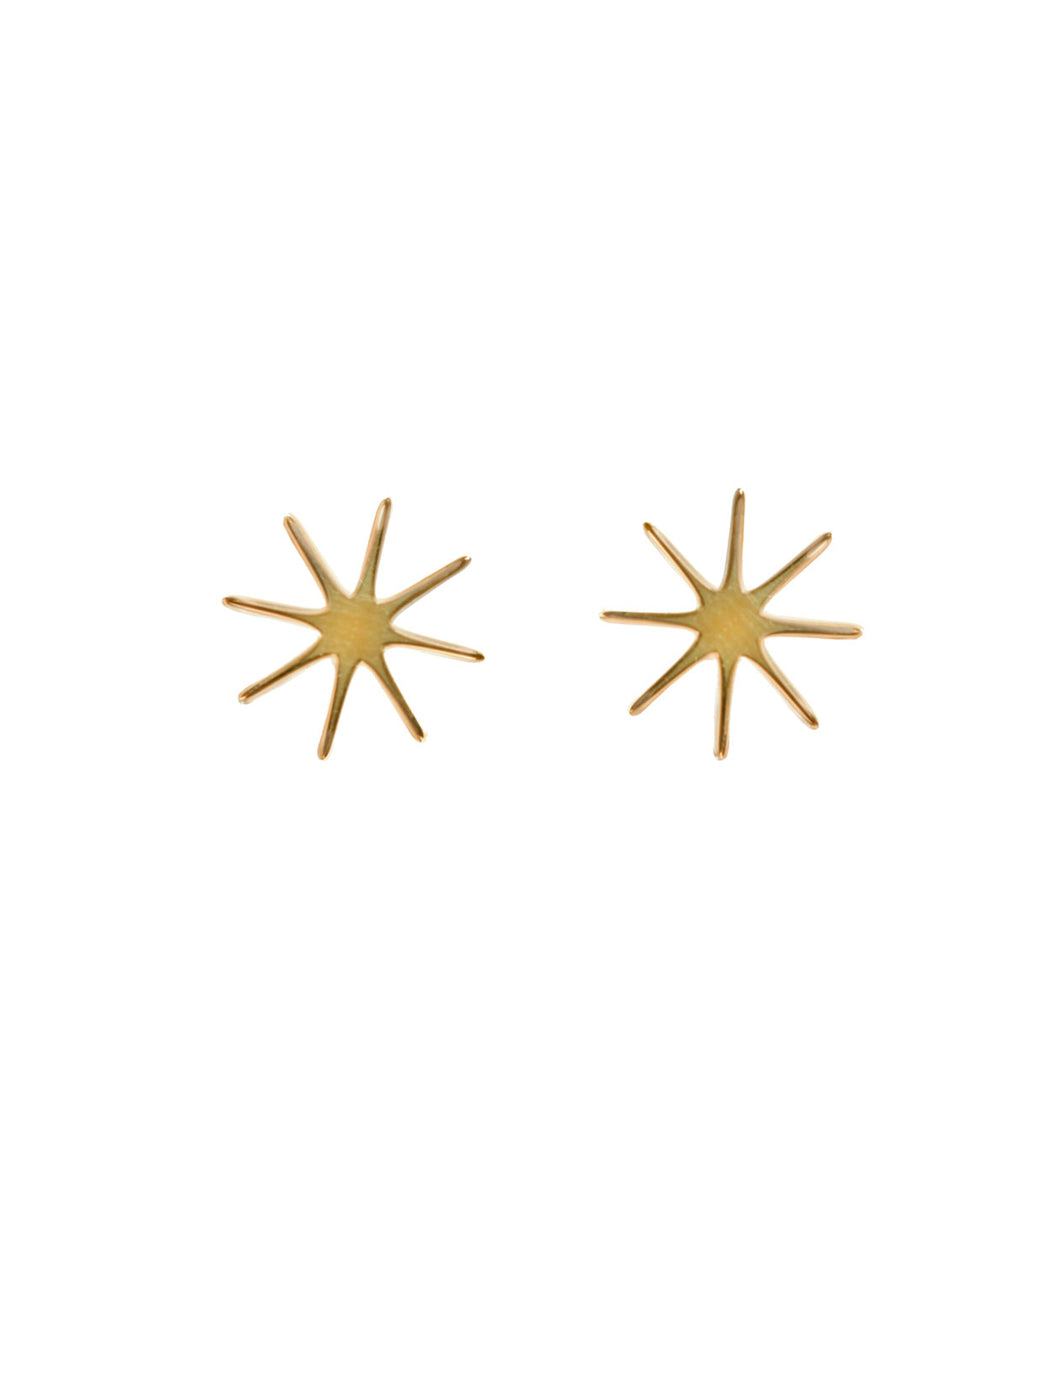 Medium Spark Earrings.